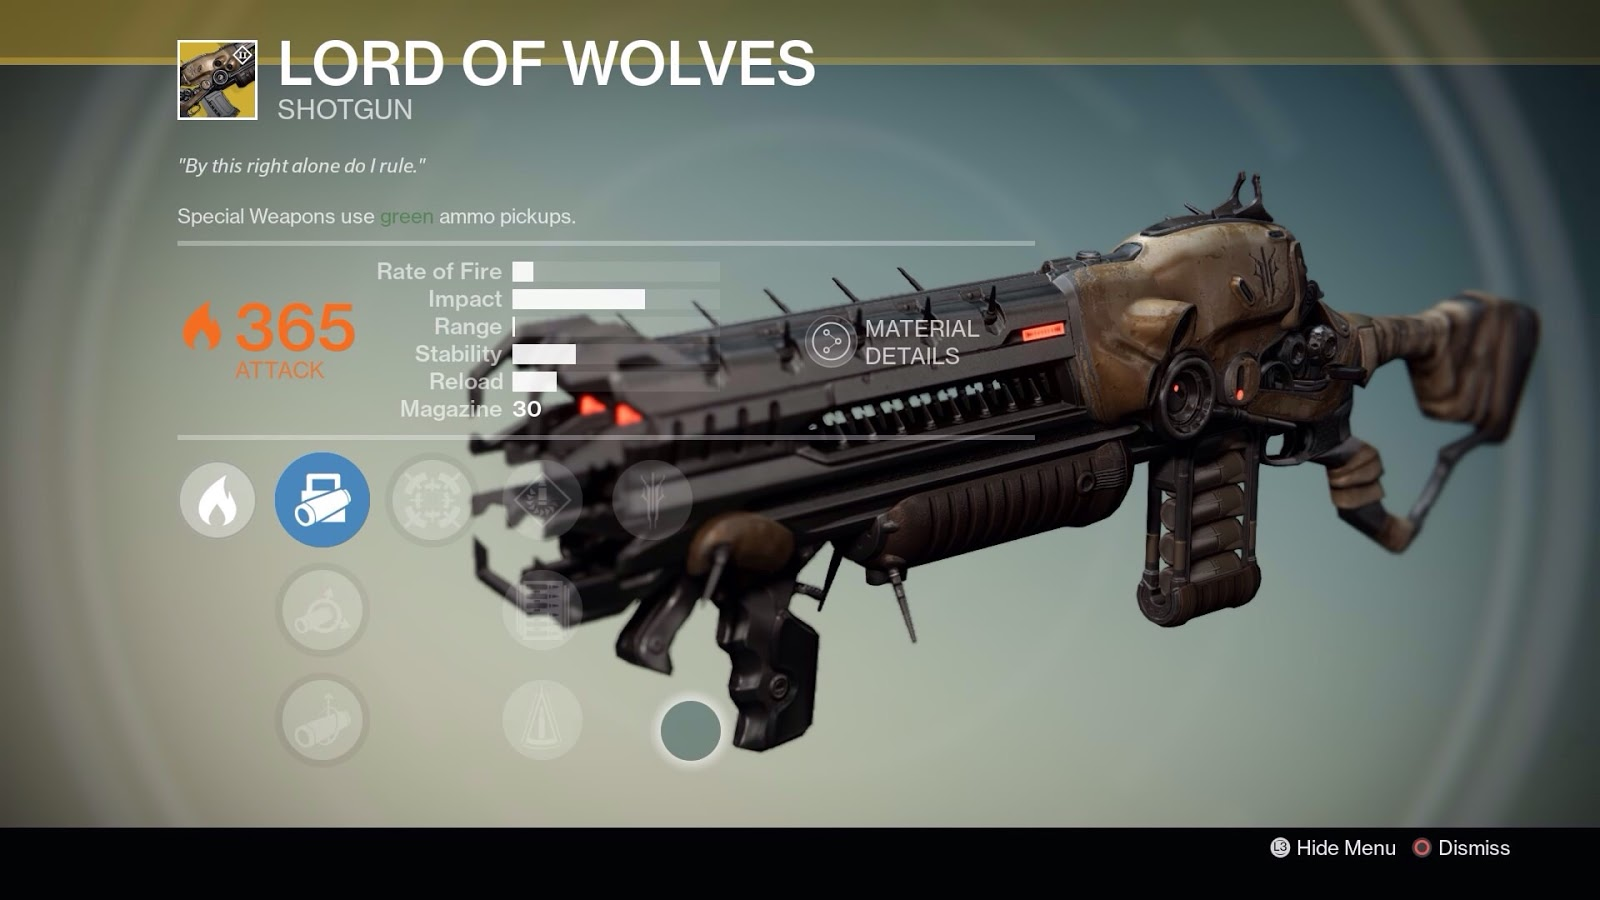 Best destiny primary weapons as of july 2015 - So Here We Go Lord Of Wolves It Was The Last Gun I Picked But It Should Have Been The First Like Many When The Stats Were First Leaked I Thought Look